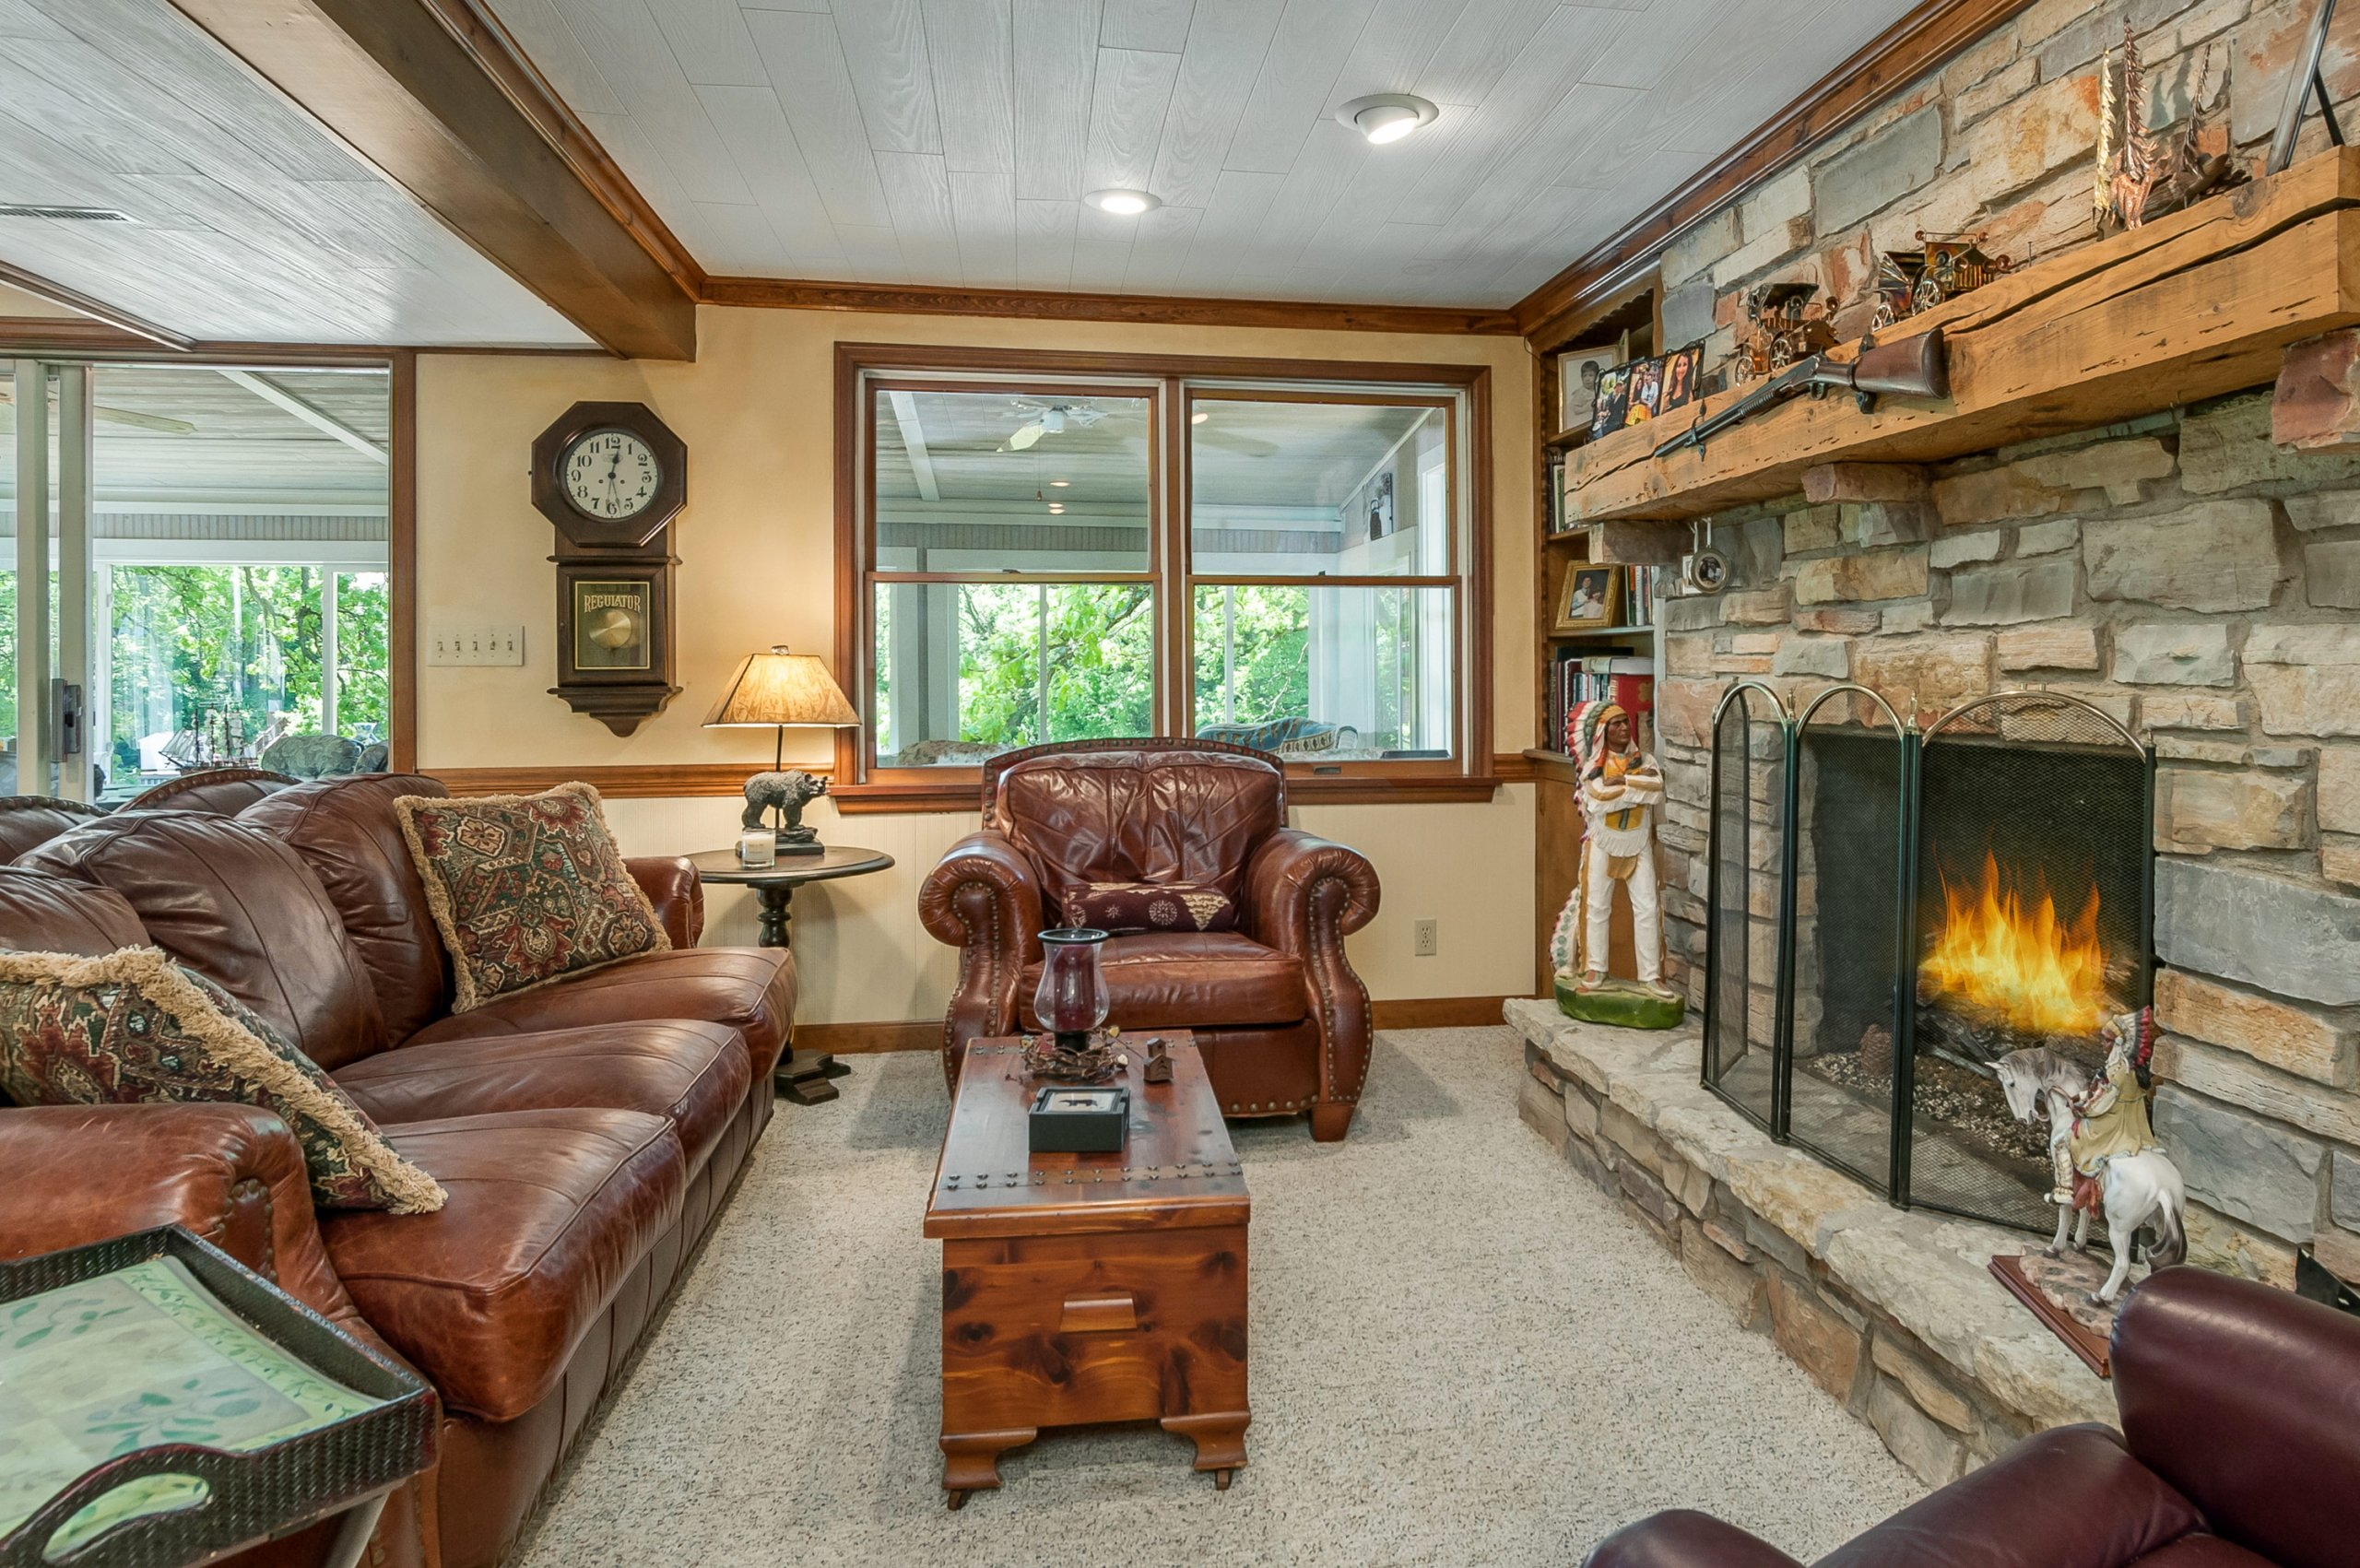 Basement den at 369 Holiday Dr., Somonauk, Illinois